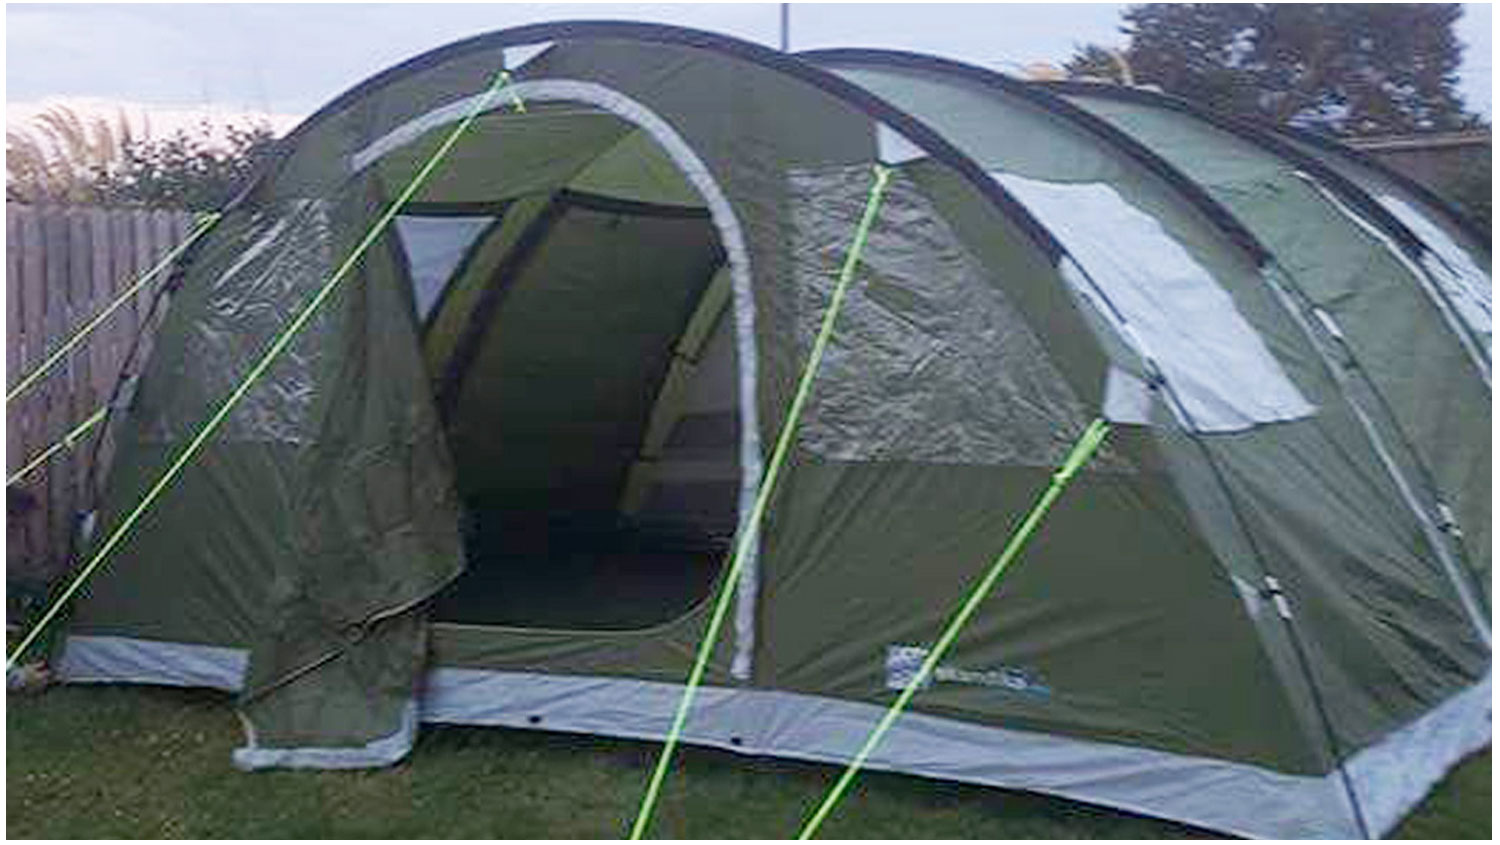 Tent_1-Camping, Campervans, Motorhomes - Lynders Mobile Home Park, Portrane:Donabate, North County Dublin, Fingal